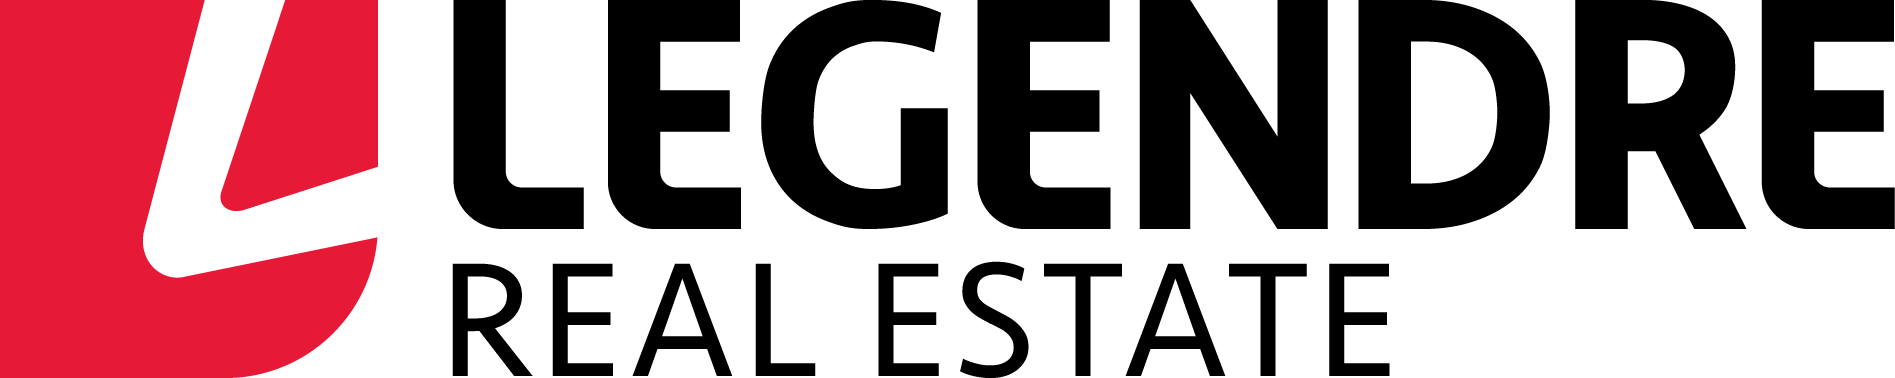 logo Legendre Real estate